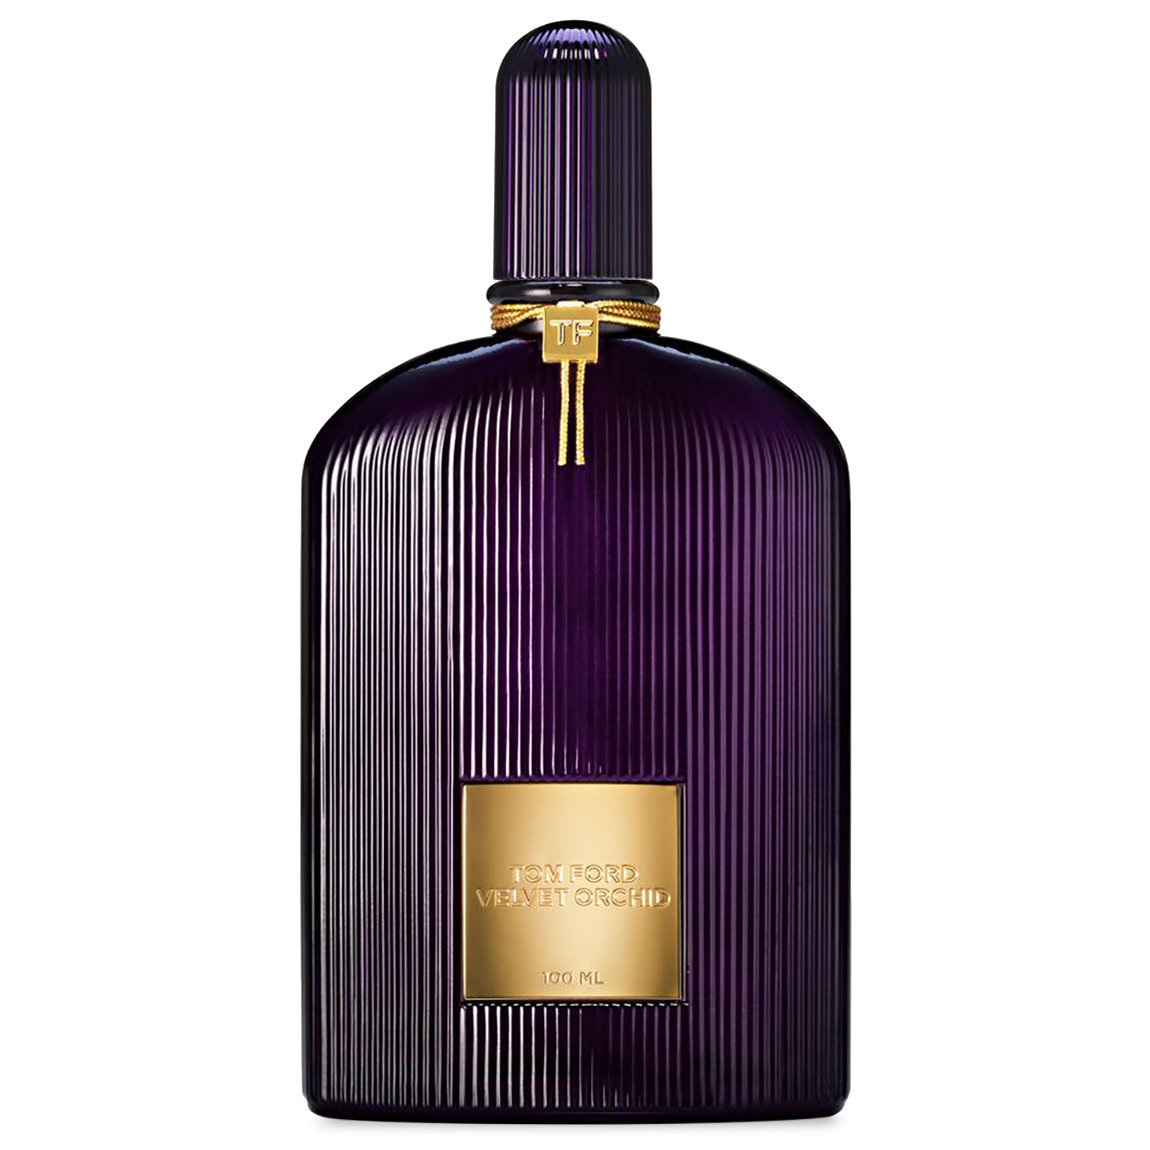 TOM FORD Velvet Orchid  100 ml alternative view 1 - product swatch.